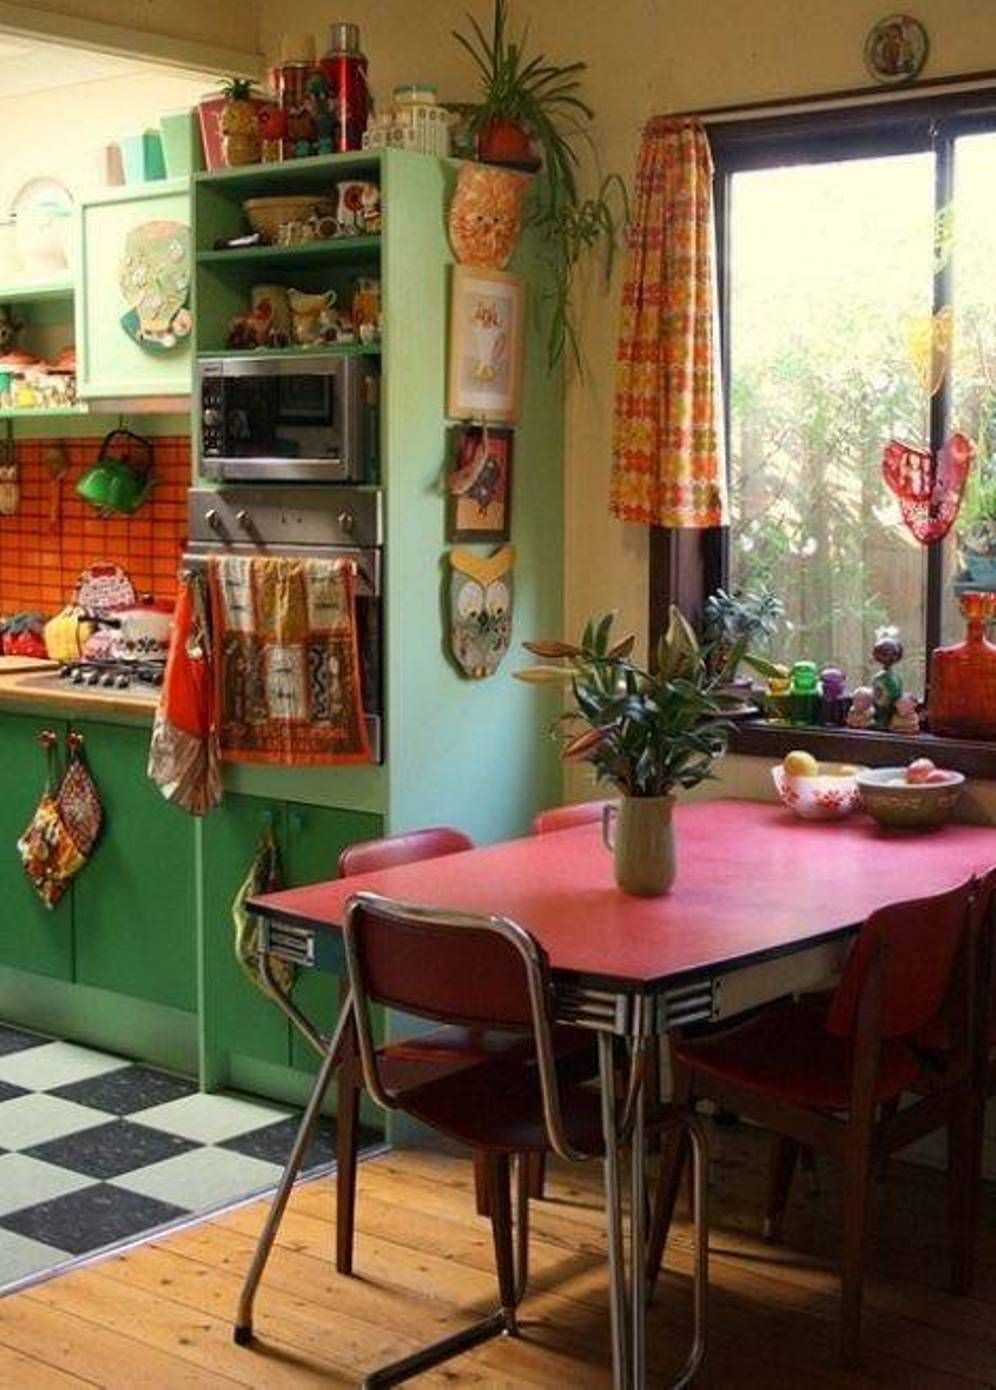 Vintage home interior pictures interior bohemian style for Quirky apartment design